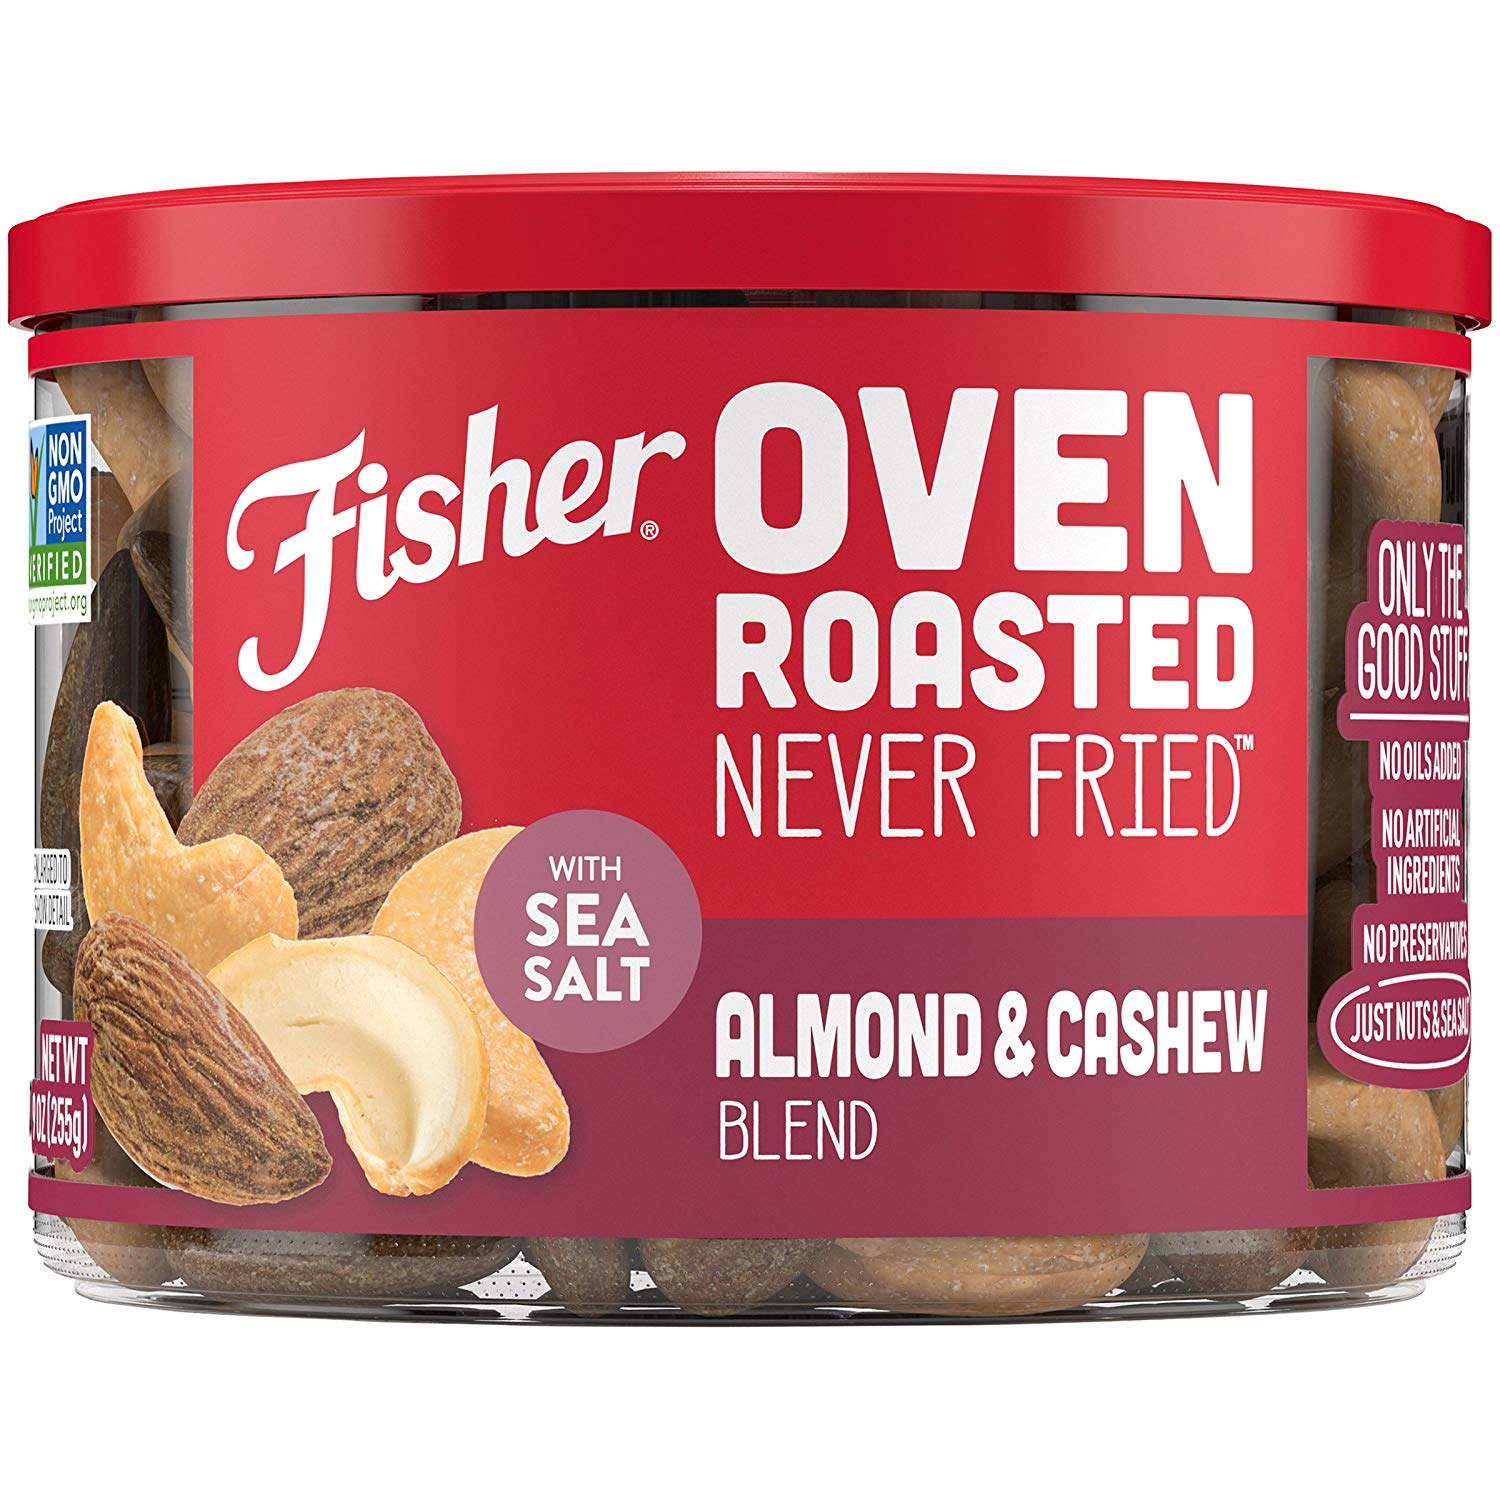 Fisher Snack Oven Roasted Never Fried Almond & Cashew Blend, 9 oz